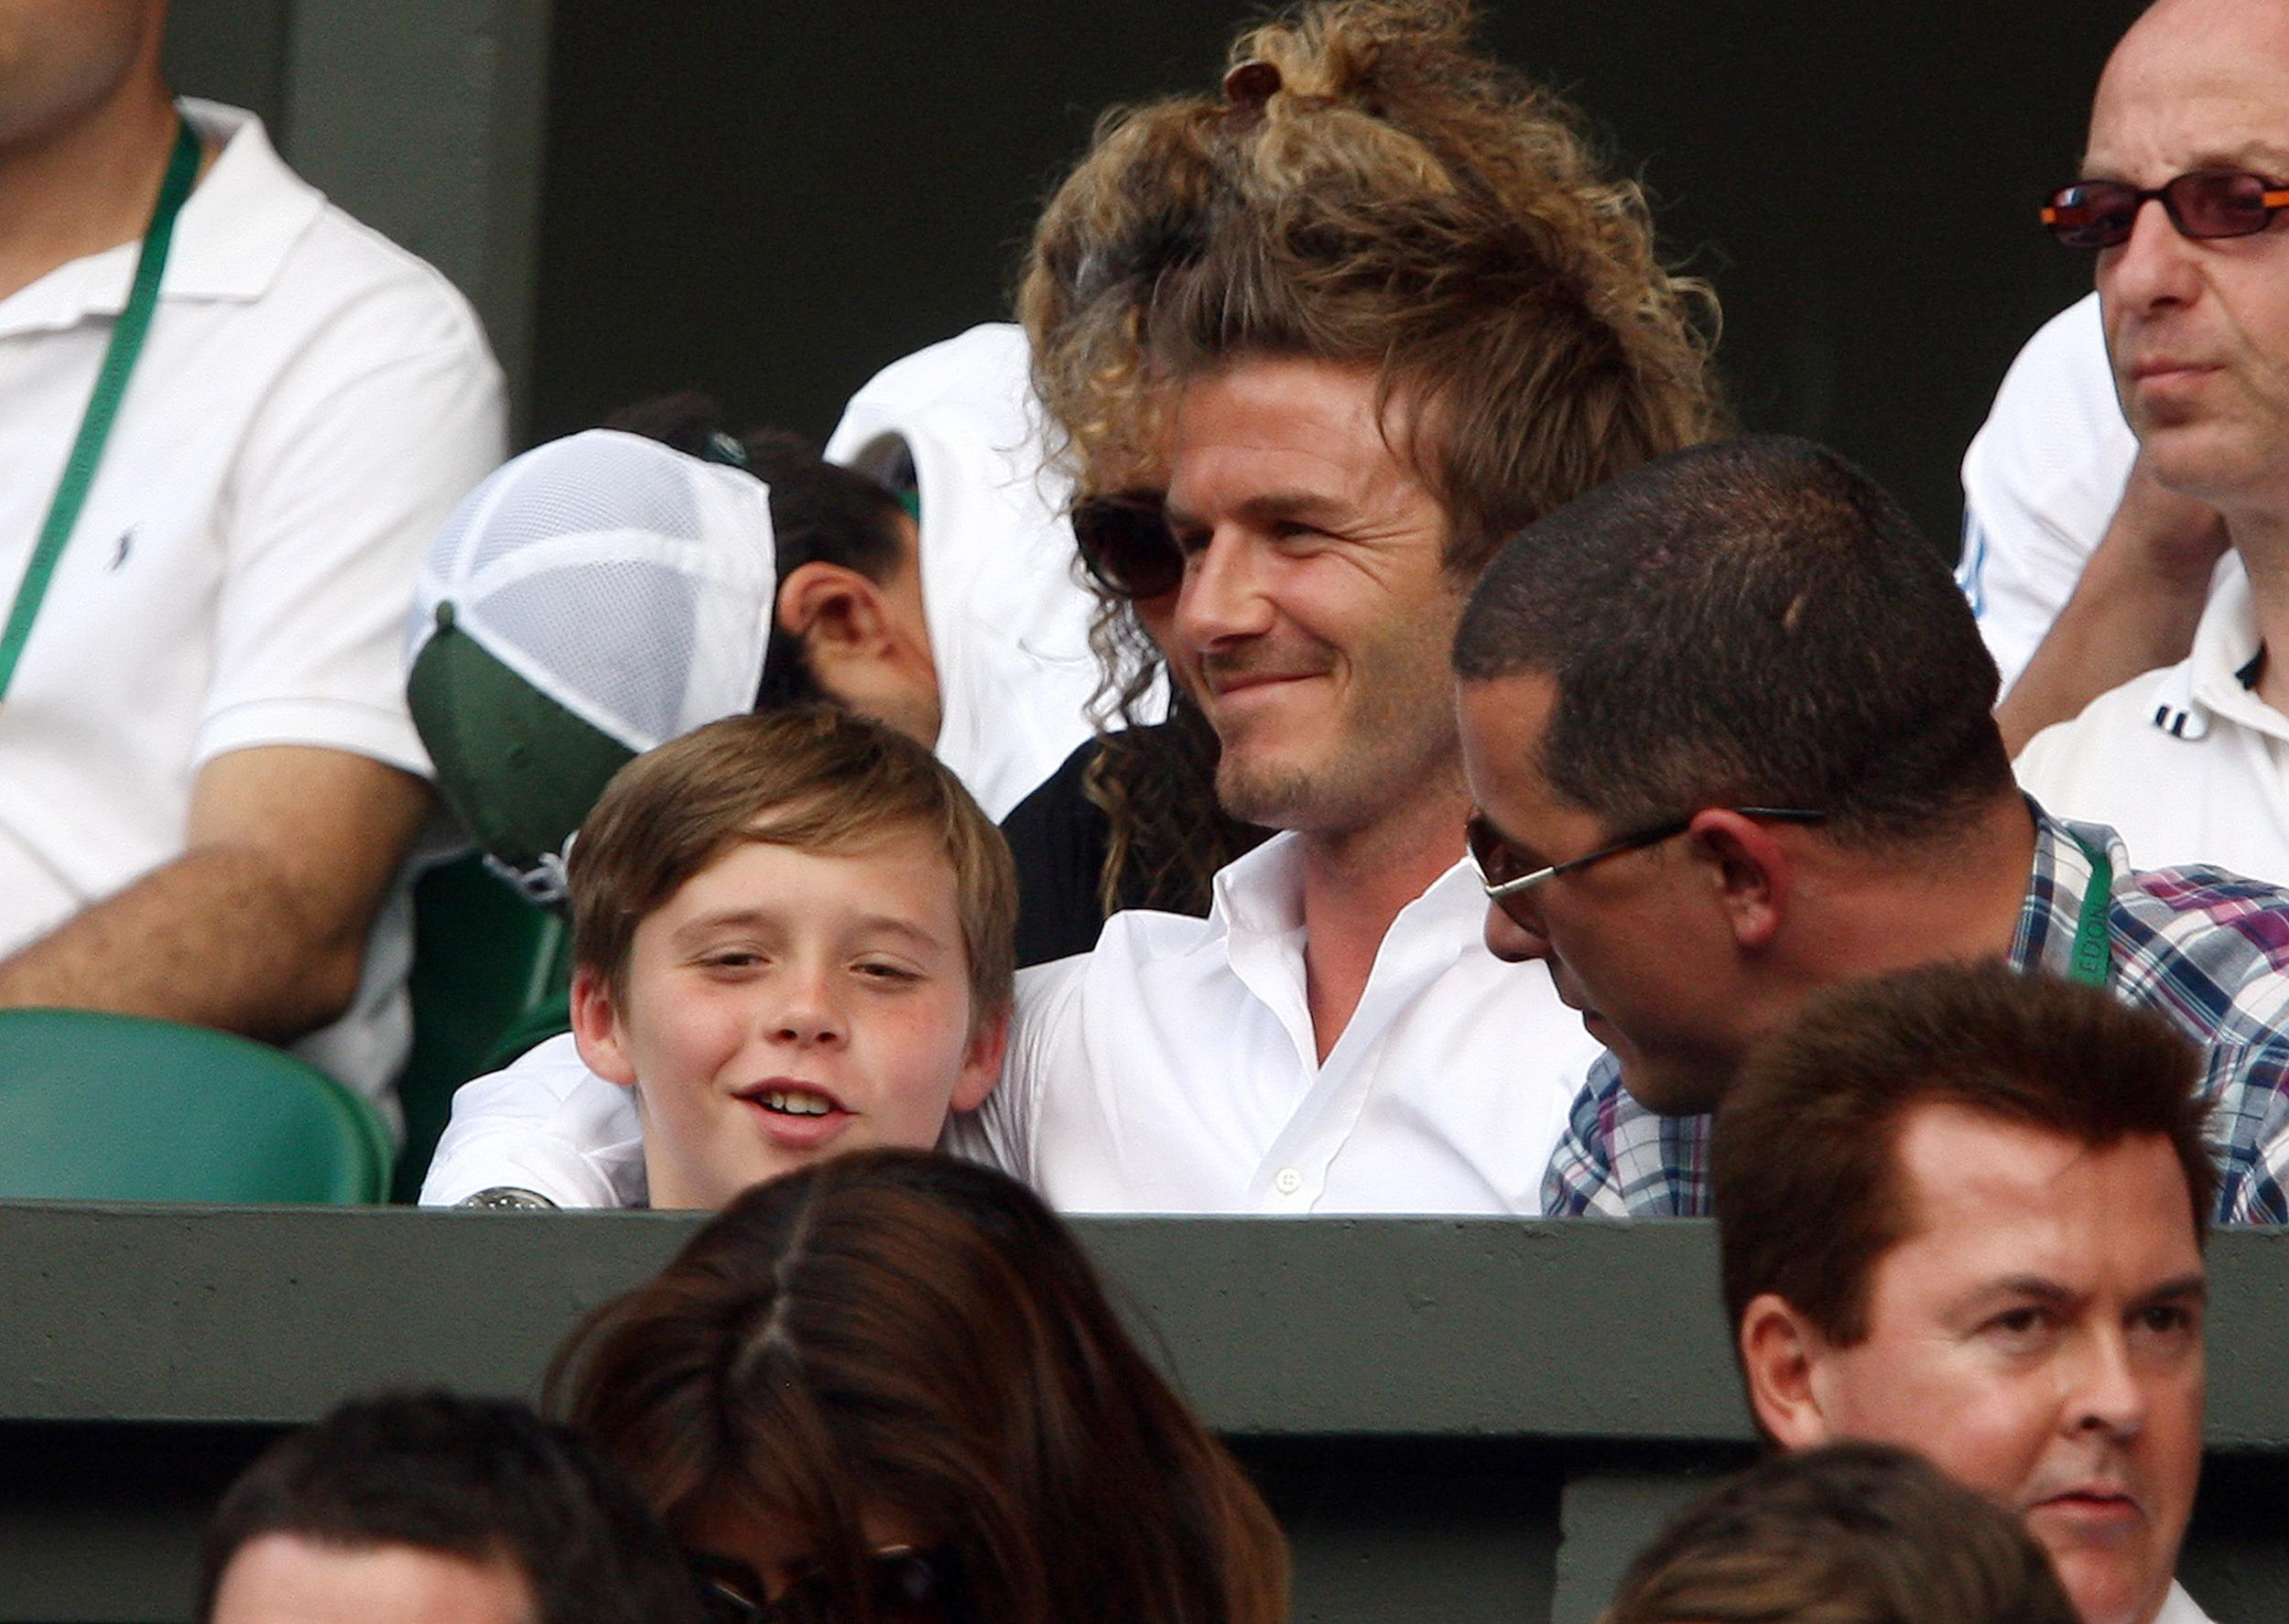 Tennis - Wimbledon - All England Lawn Tennis & Croquet Club, Wimbledon, England - 2/7/10  David Beckham (C) and son Brooklyn (L) in the stands during Great Britain's Andy Murray  semi final match  Mandatory Credit: Action Images / Paul Childs  Livepic